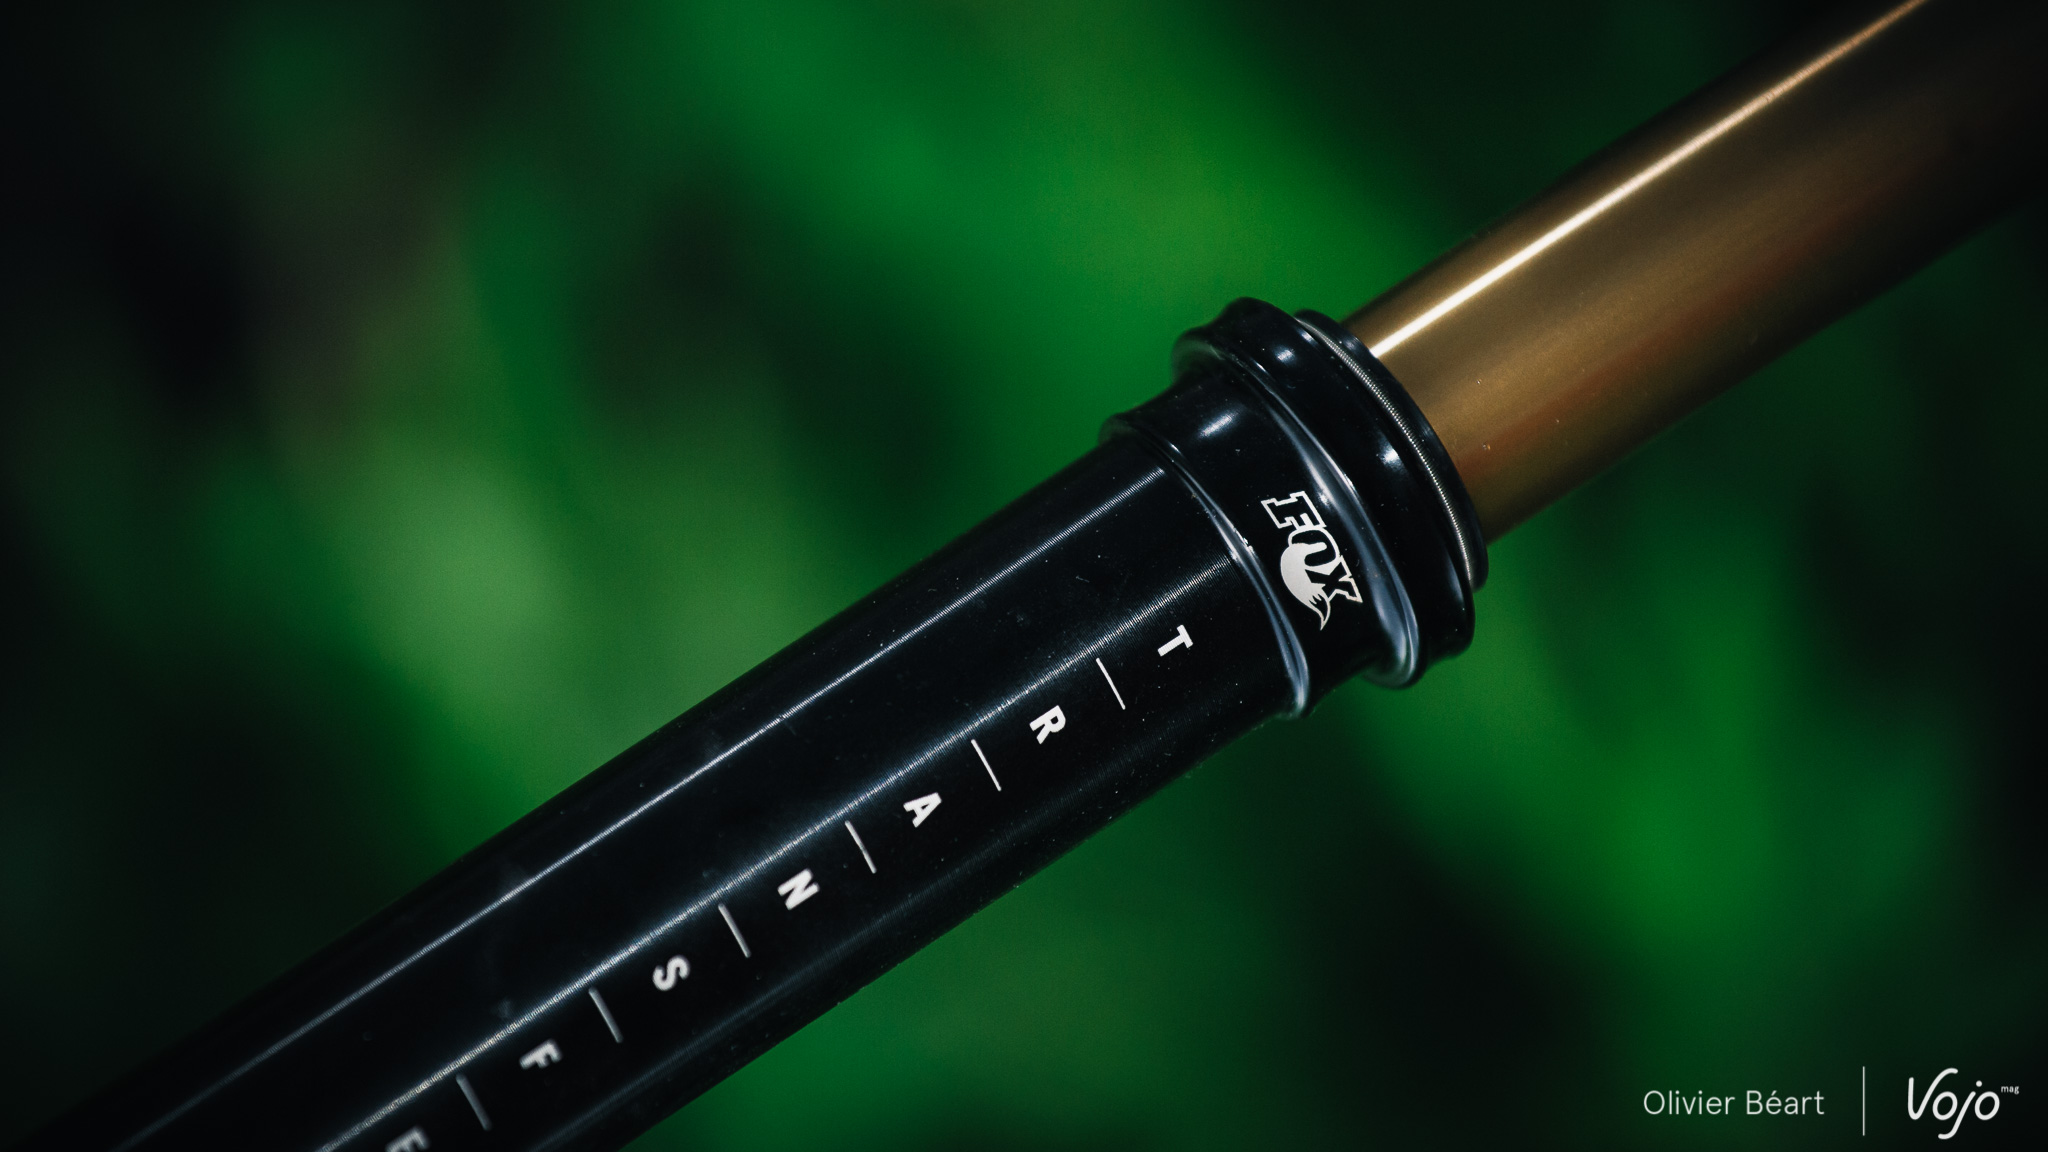 Fox_Transfer_Seatpost_Tige_Selle_HD_Copyright_OBeart_VojoMag-1-4